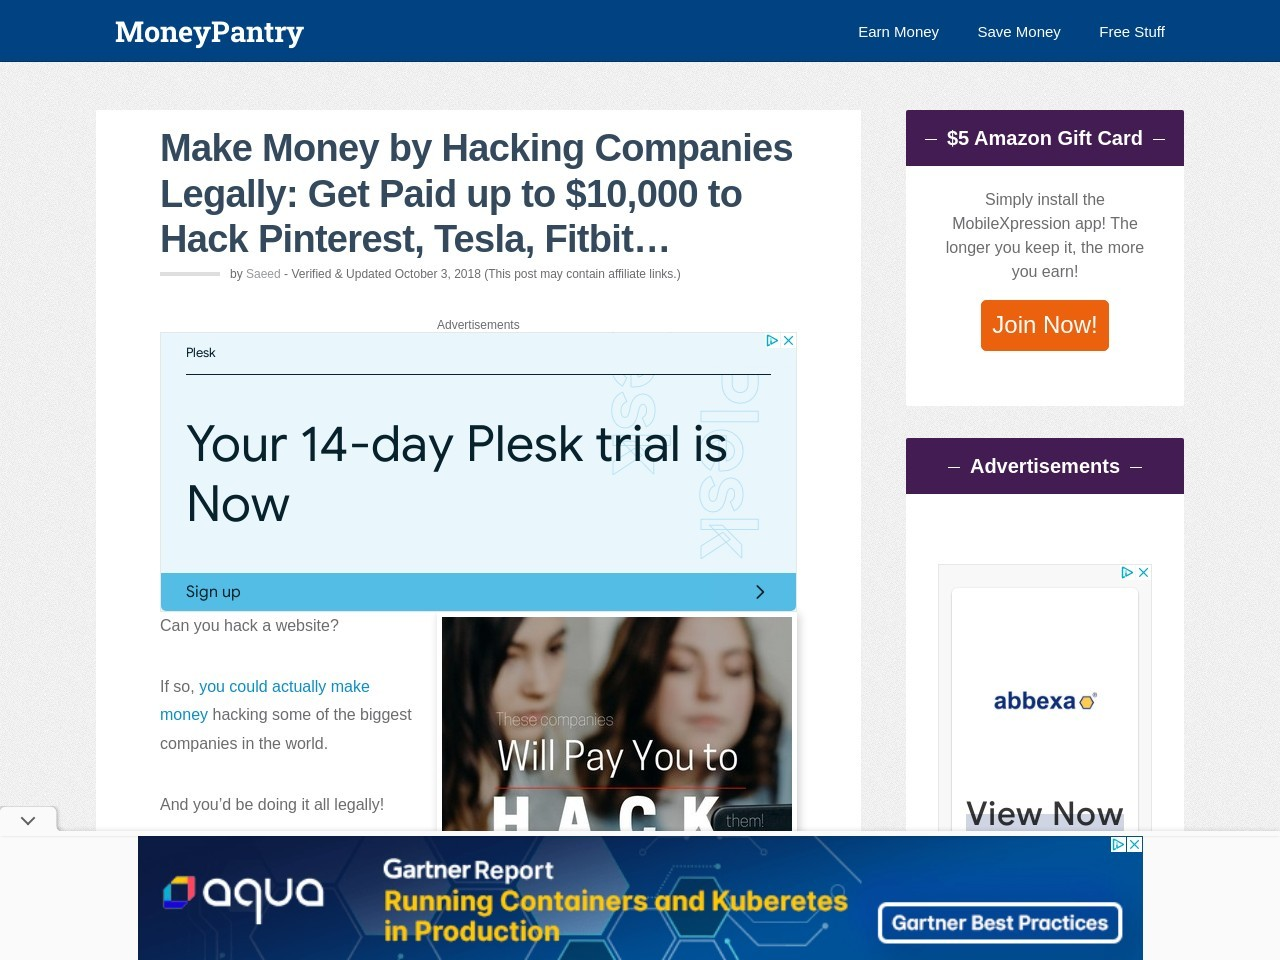 Make Money by Hacking Companies Legally: Get Paid up to $10,000 to Hack Pinterest, Tesla, Fitbit…